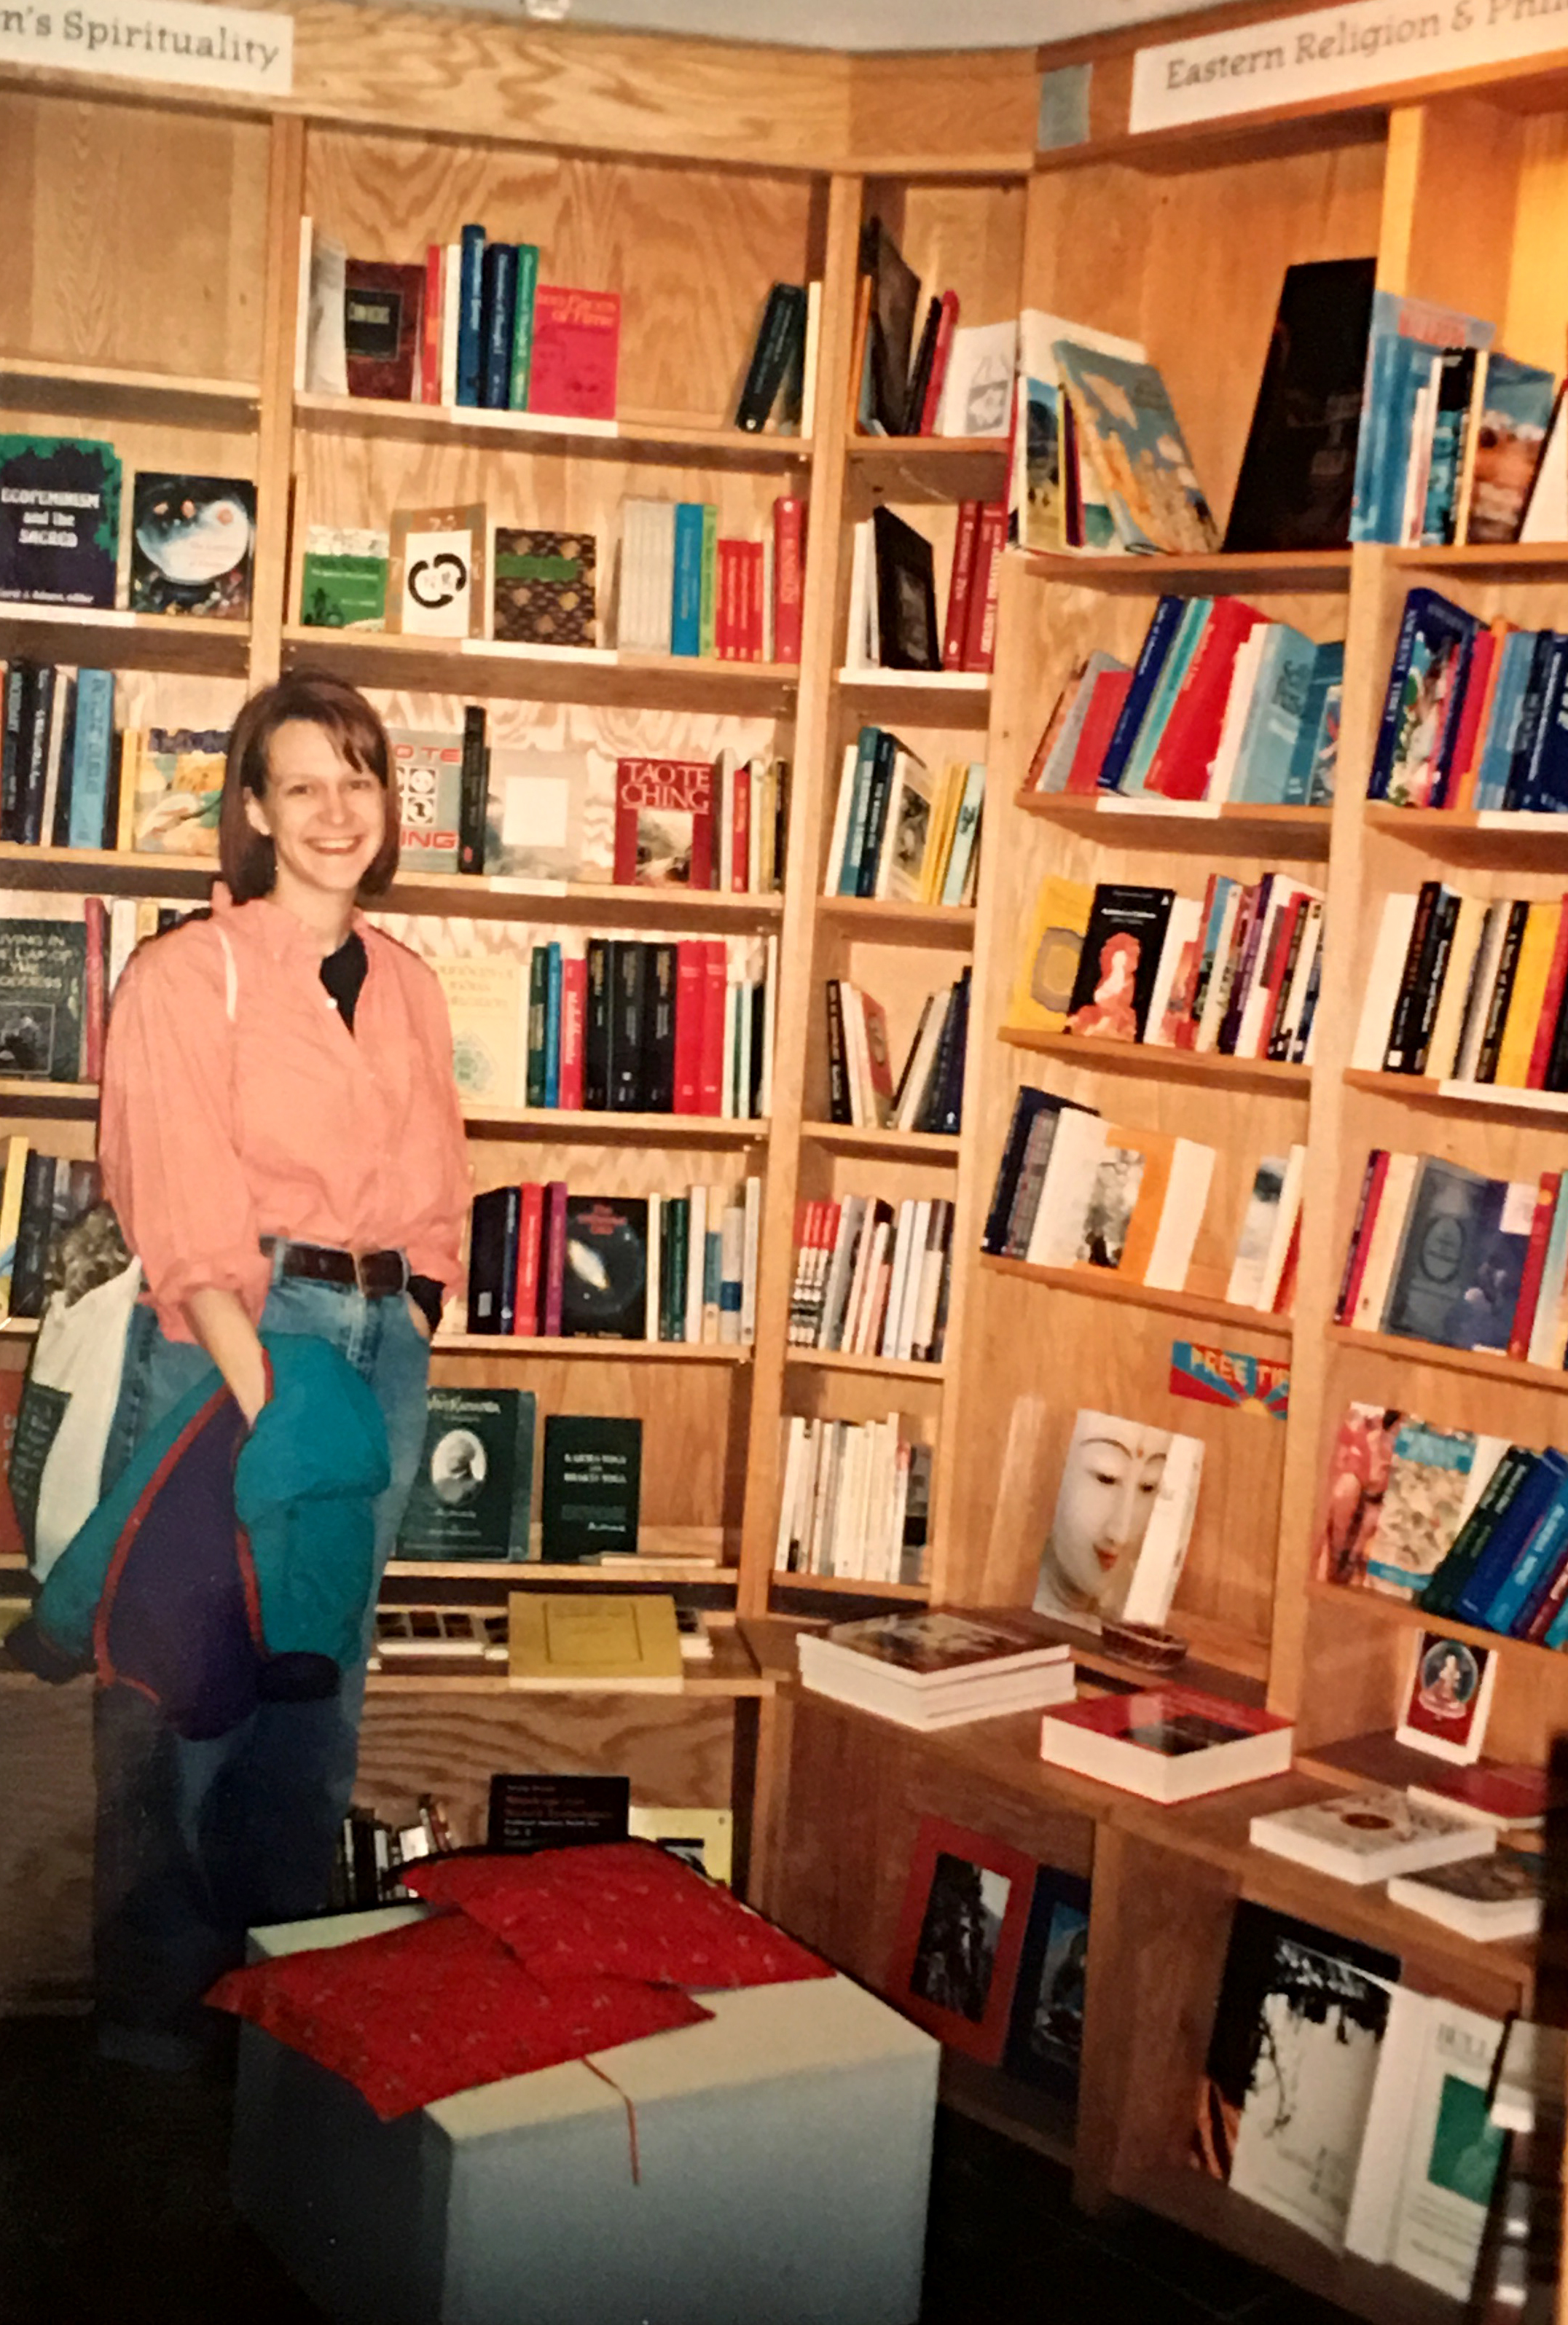 Jenni Bick Custom Journals, 25 Years After closing her independent bookstore in adam's morgan, Jenni Bick is opening up a paper goods emporium in Dupont